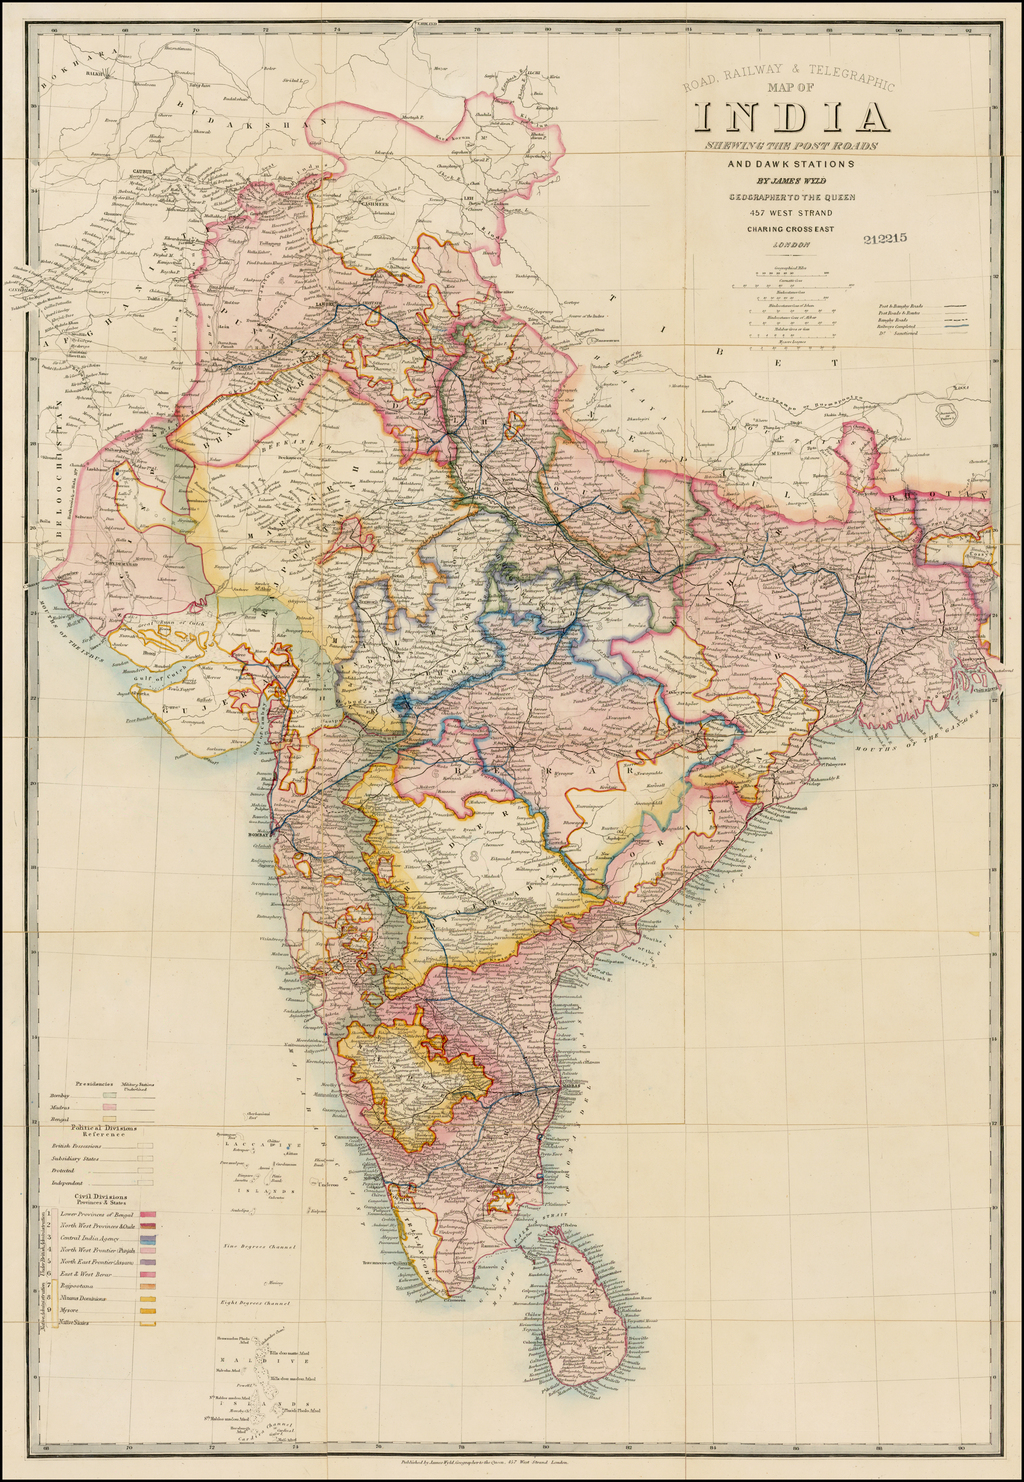 Road, Railway & Telegrahic Map of India Shewing The Post Roads And Dawk Stations By James Wyld . . .  By James Wyld